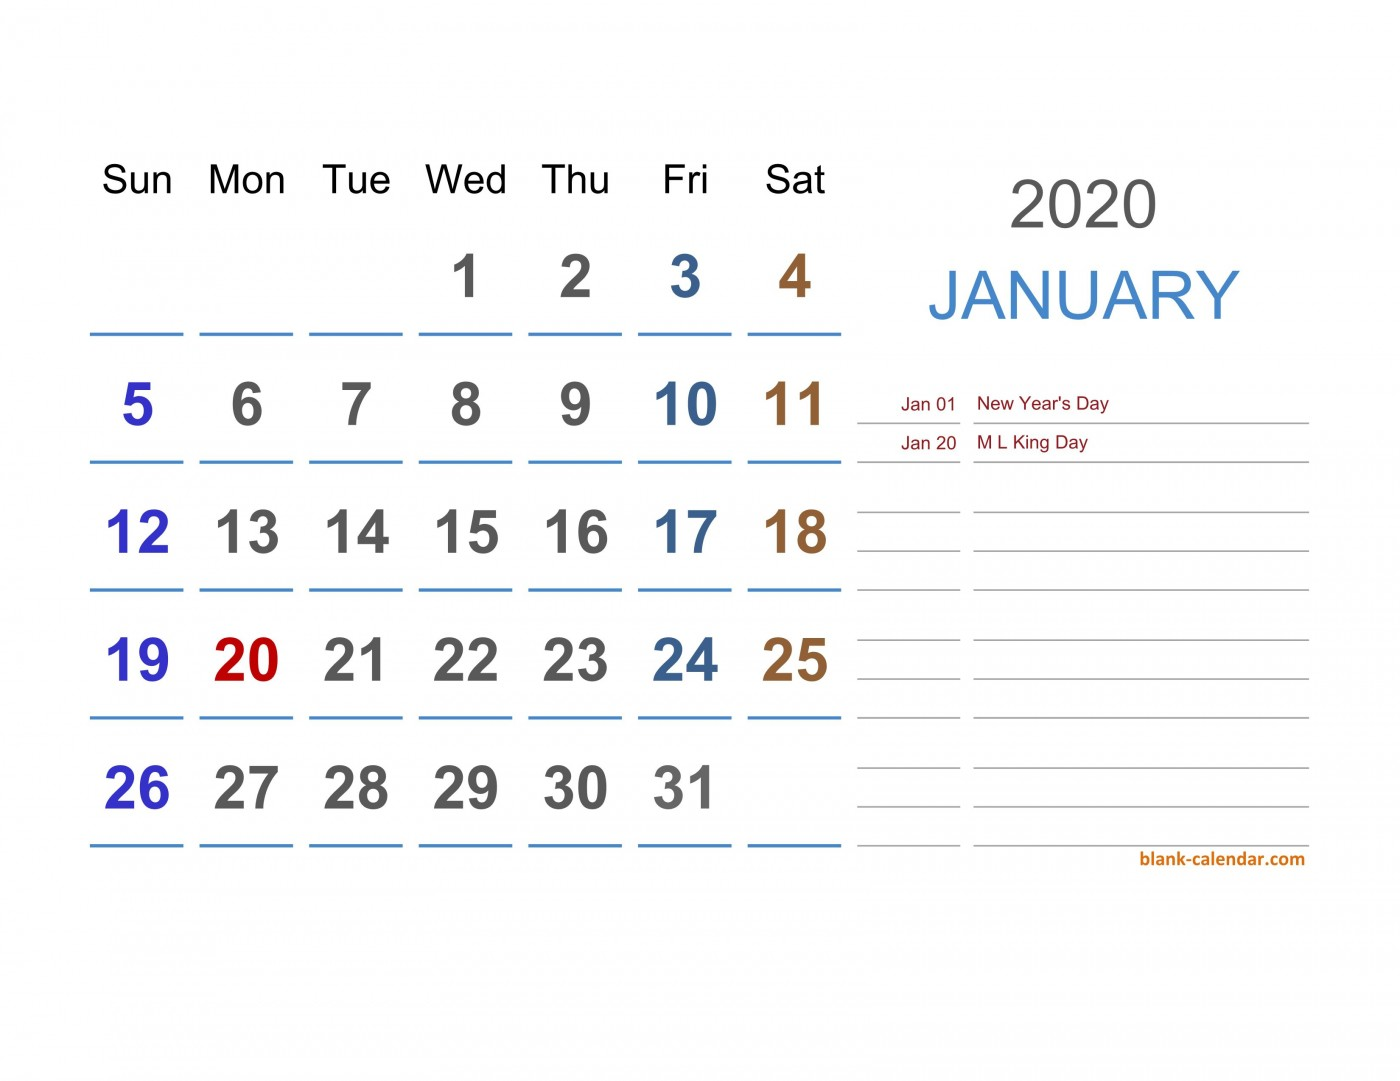 001 Fascinating Microsoft Calendar Template 2020 High Resolution  Publisher Office Free1400